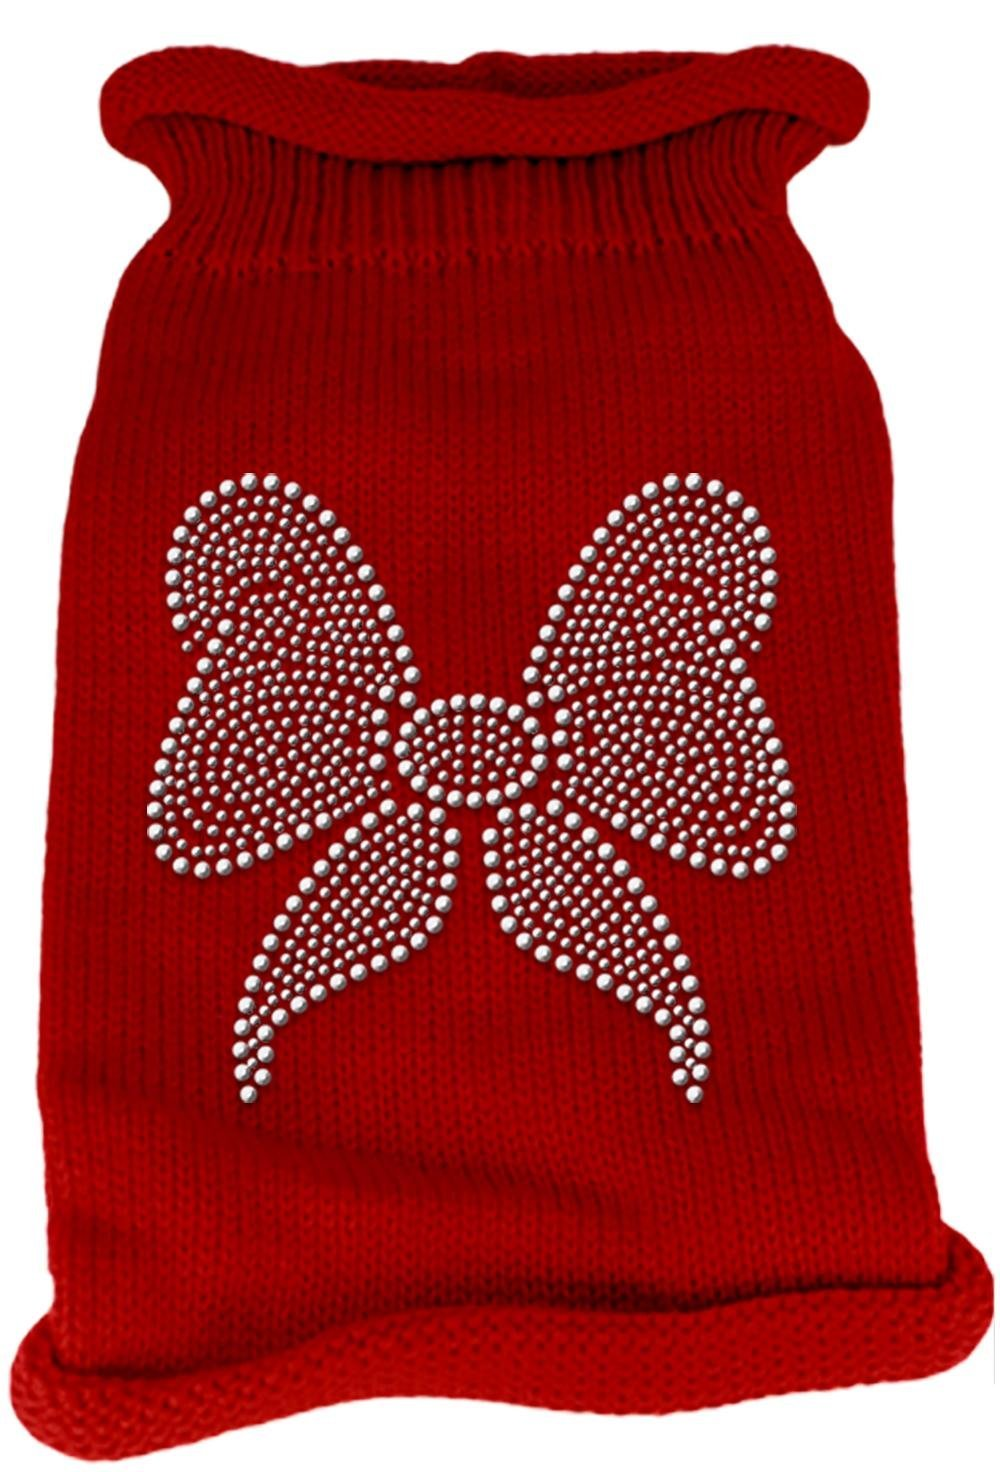 Mirage Pet Products Bow Rhinestone Knit Pet Sweater Red, X-Small